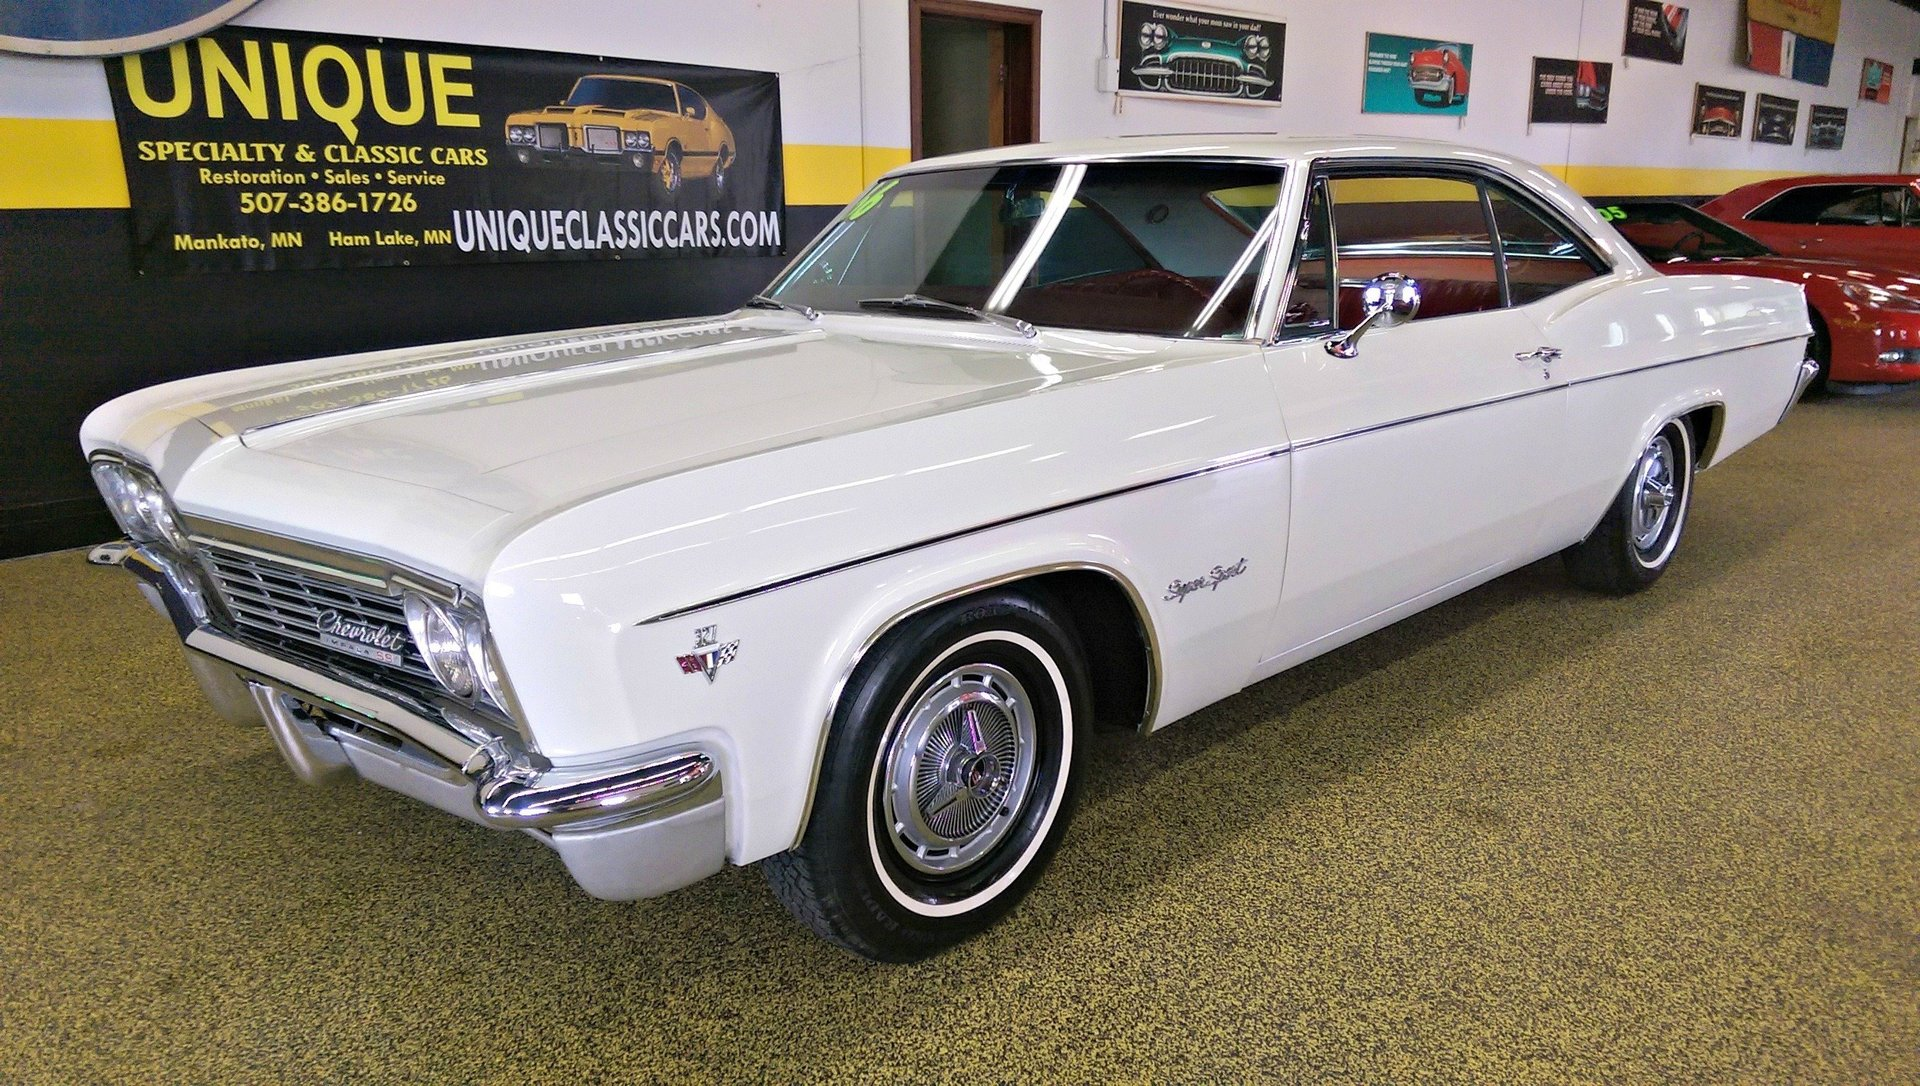 1966 Chevrolet Impala Ss 2dr Hardtop For Sale 50284 Mcg